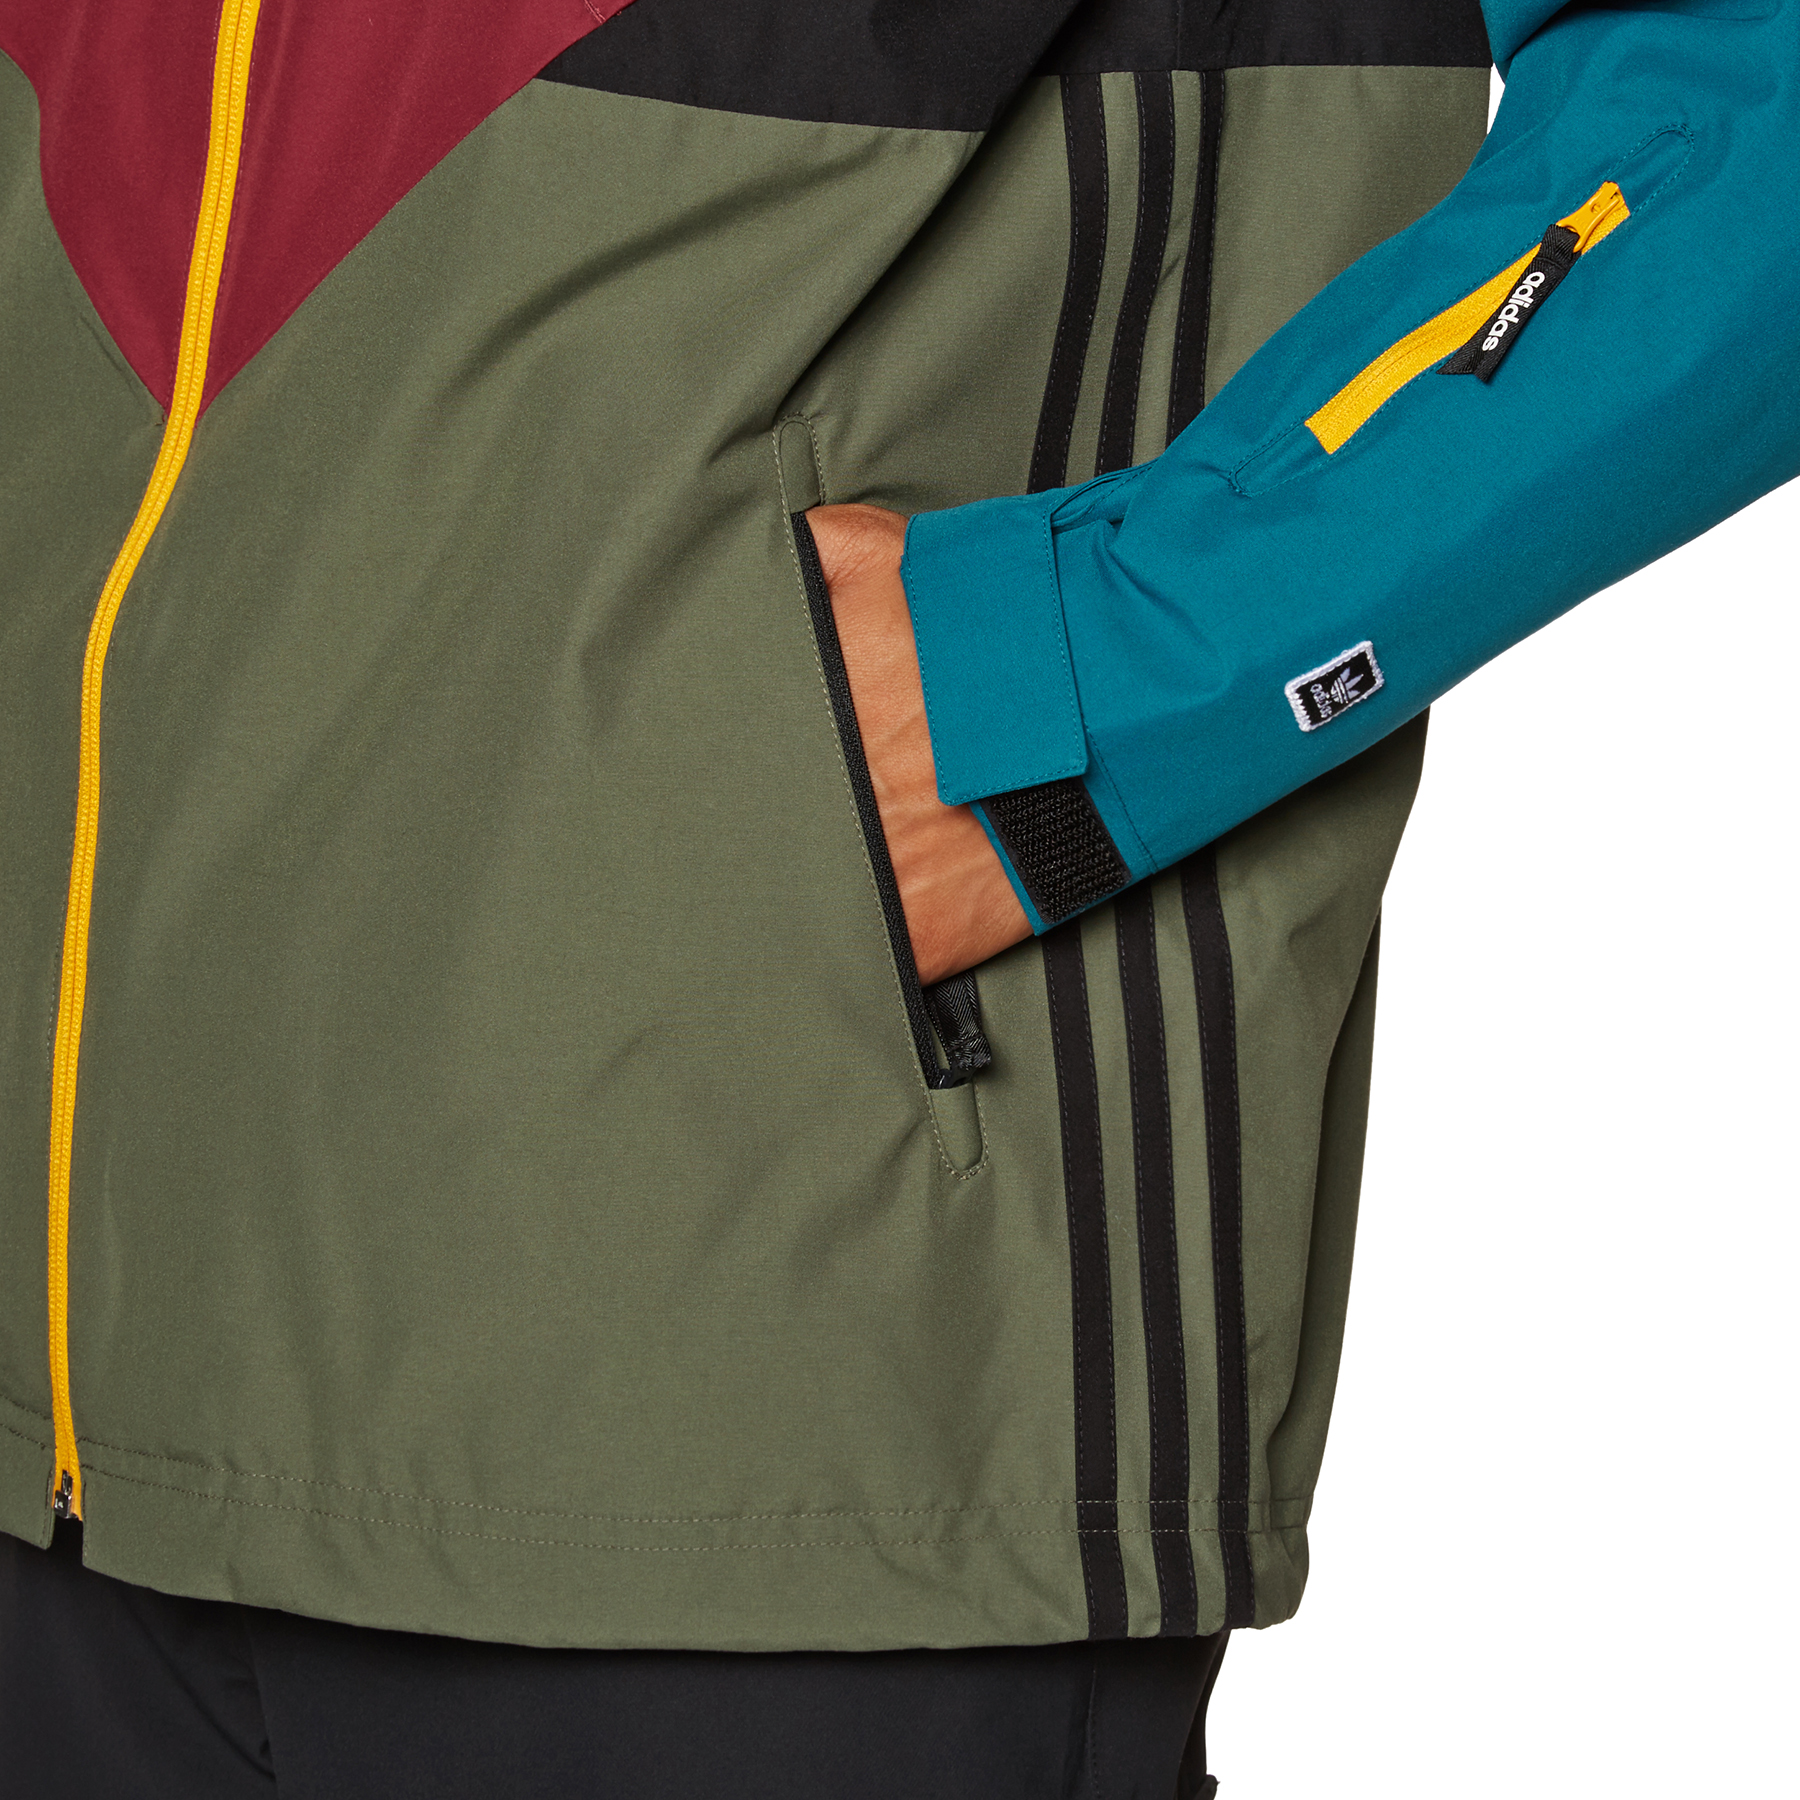 Details about adidas Premiere Riding Snow Jacket Base Green